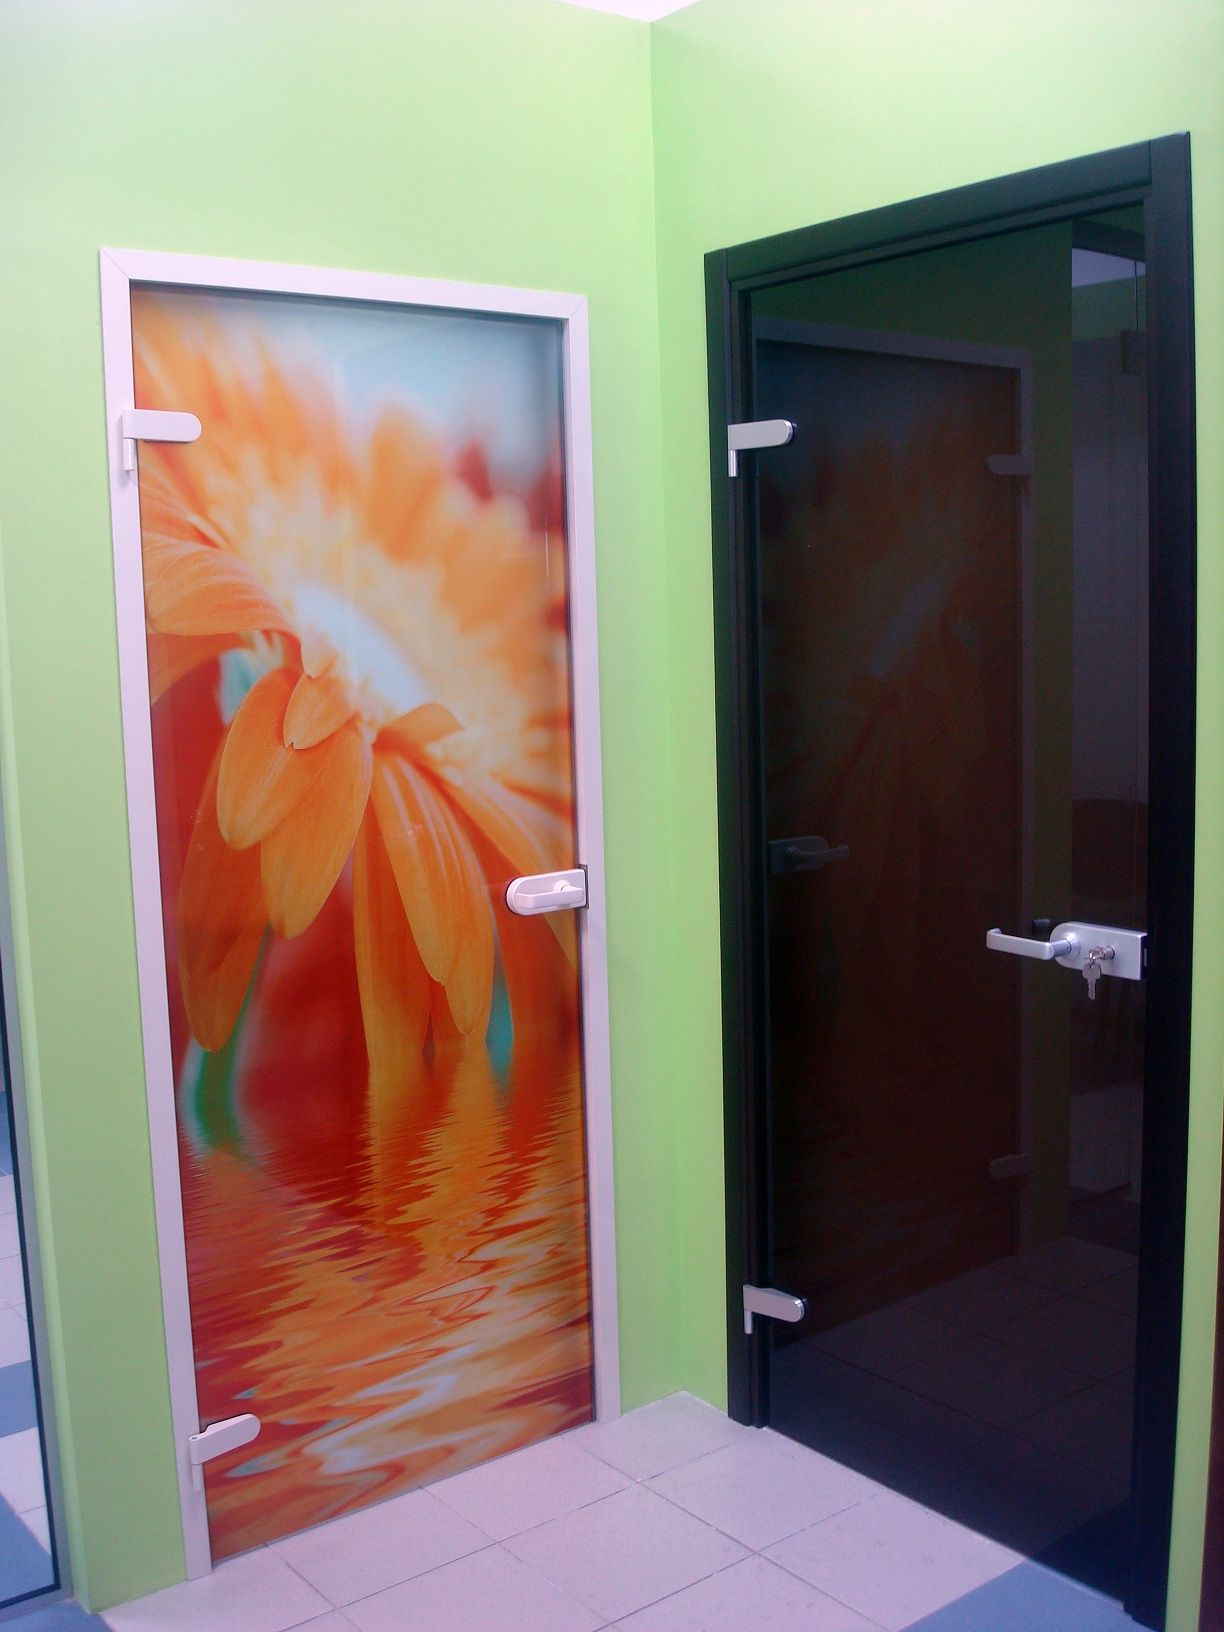 1632 #923120 Orange Glass Door With Flower Pattern And Brown Glass Interior Door picture/photo Double Swinging Interior Doors 34191224